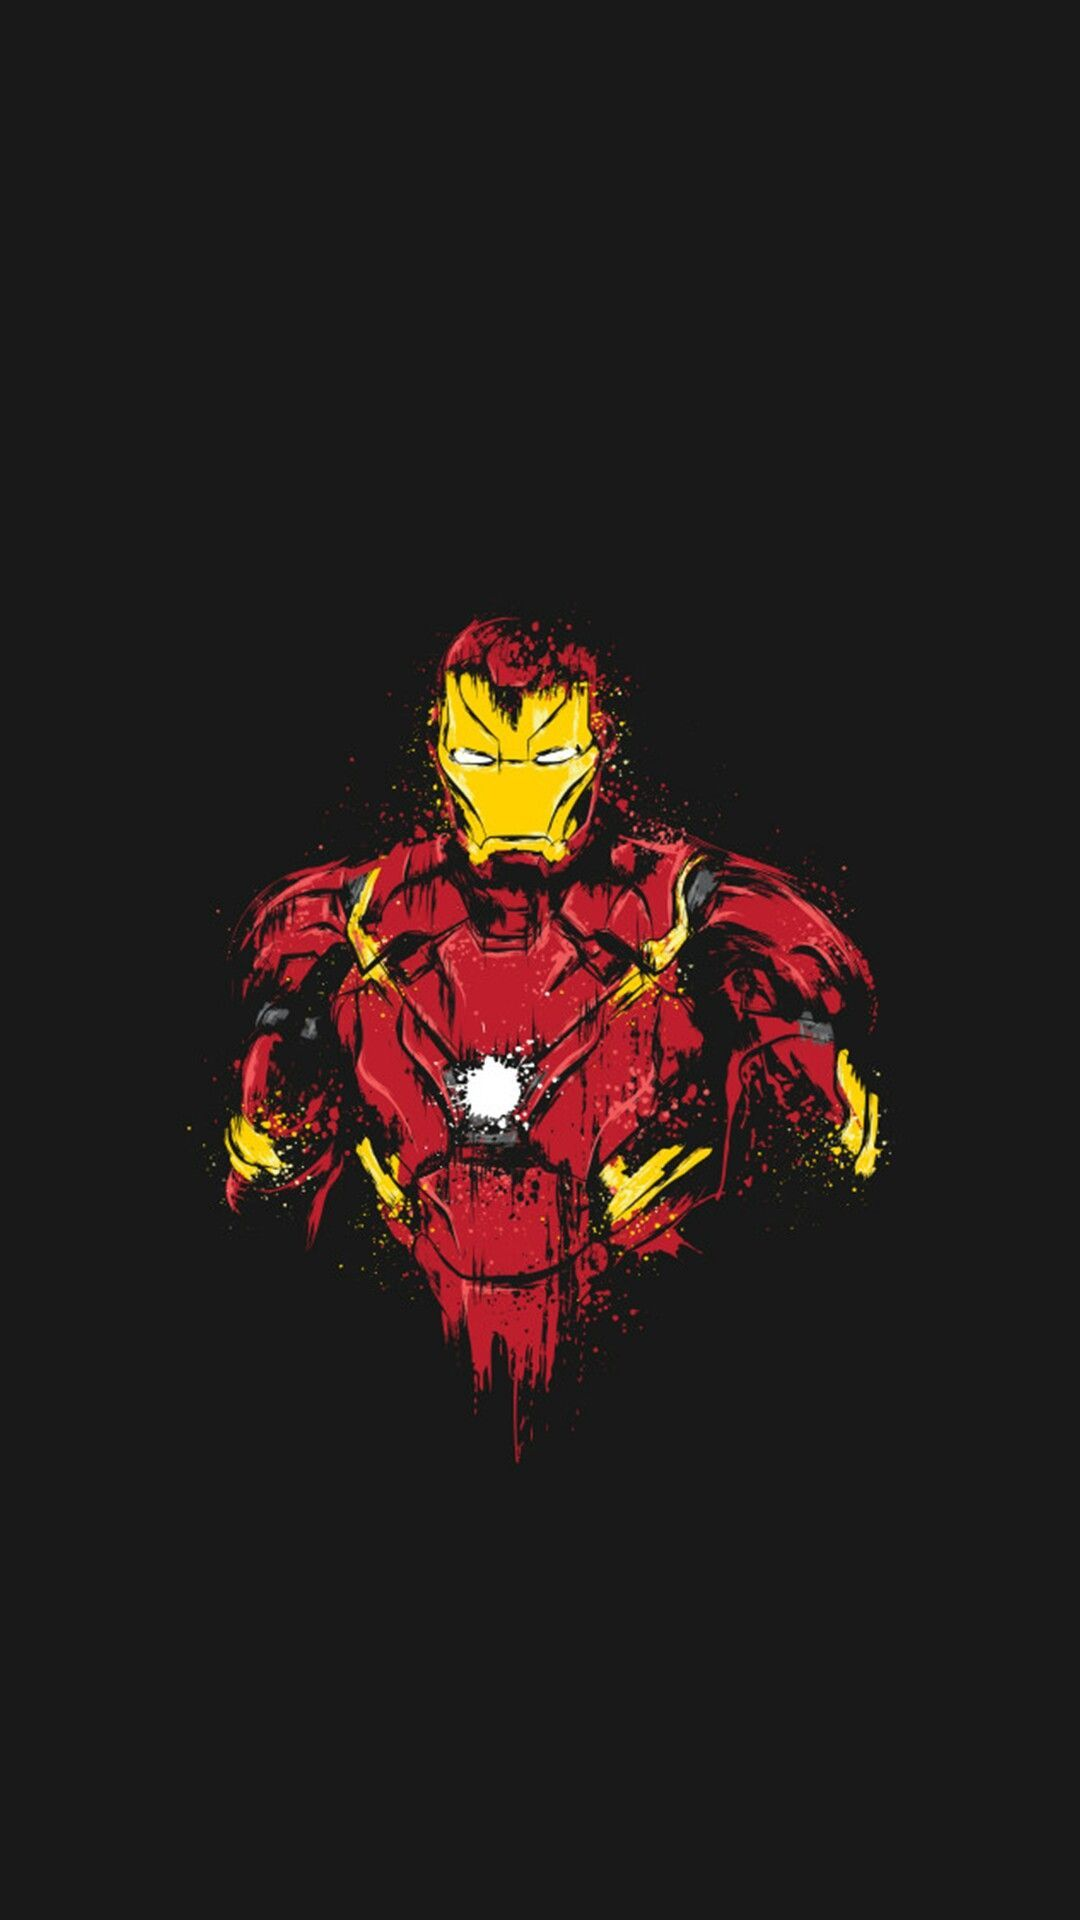 Marvel Wallpaper for iPhone from Uploaded by user